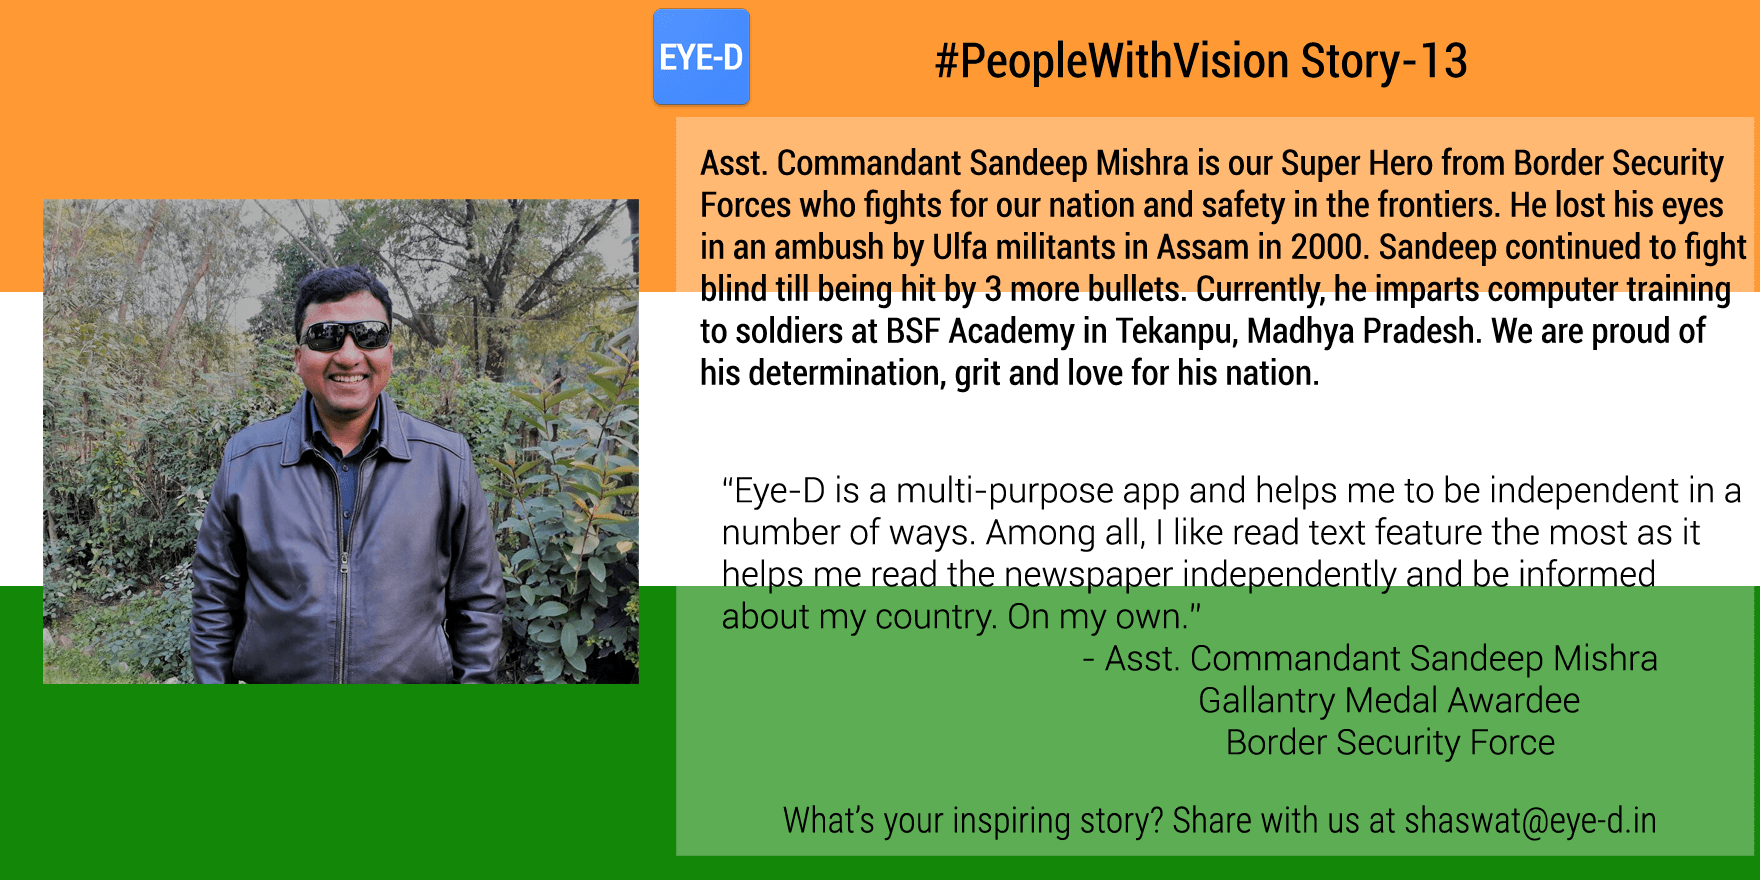 Asst. Commander Sandeep Mishra's story speaks about his love for the country and how fought through all odds keeping the country first. Eye-D now helps him read newspaper independently and explore places nearby.